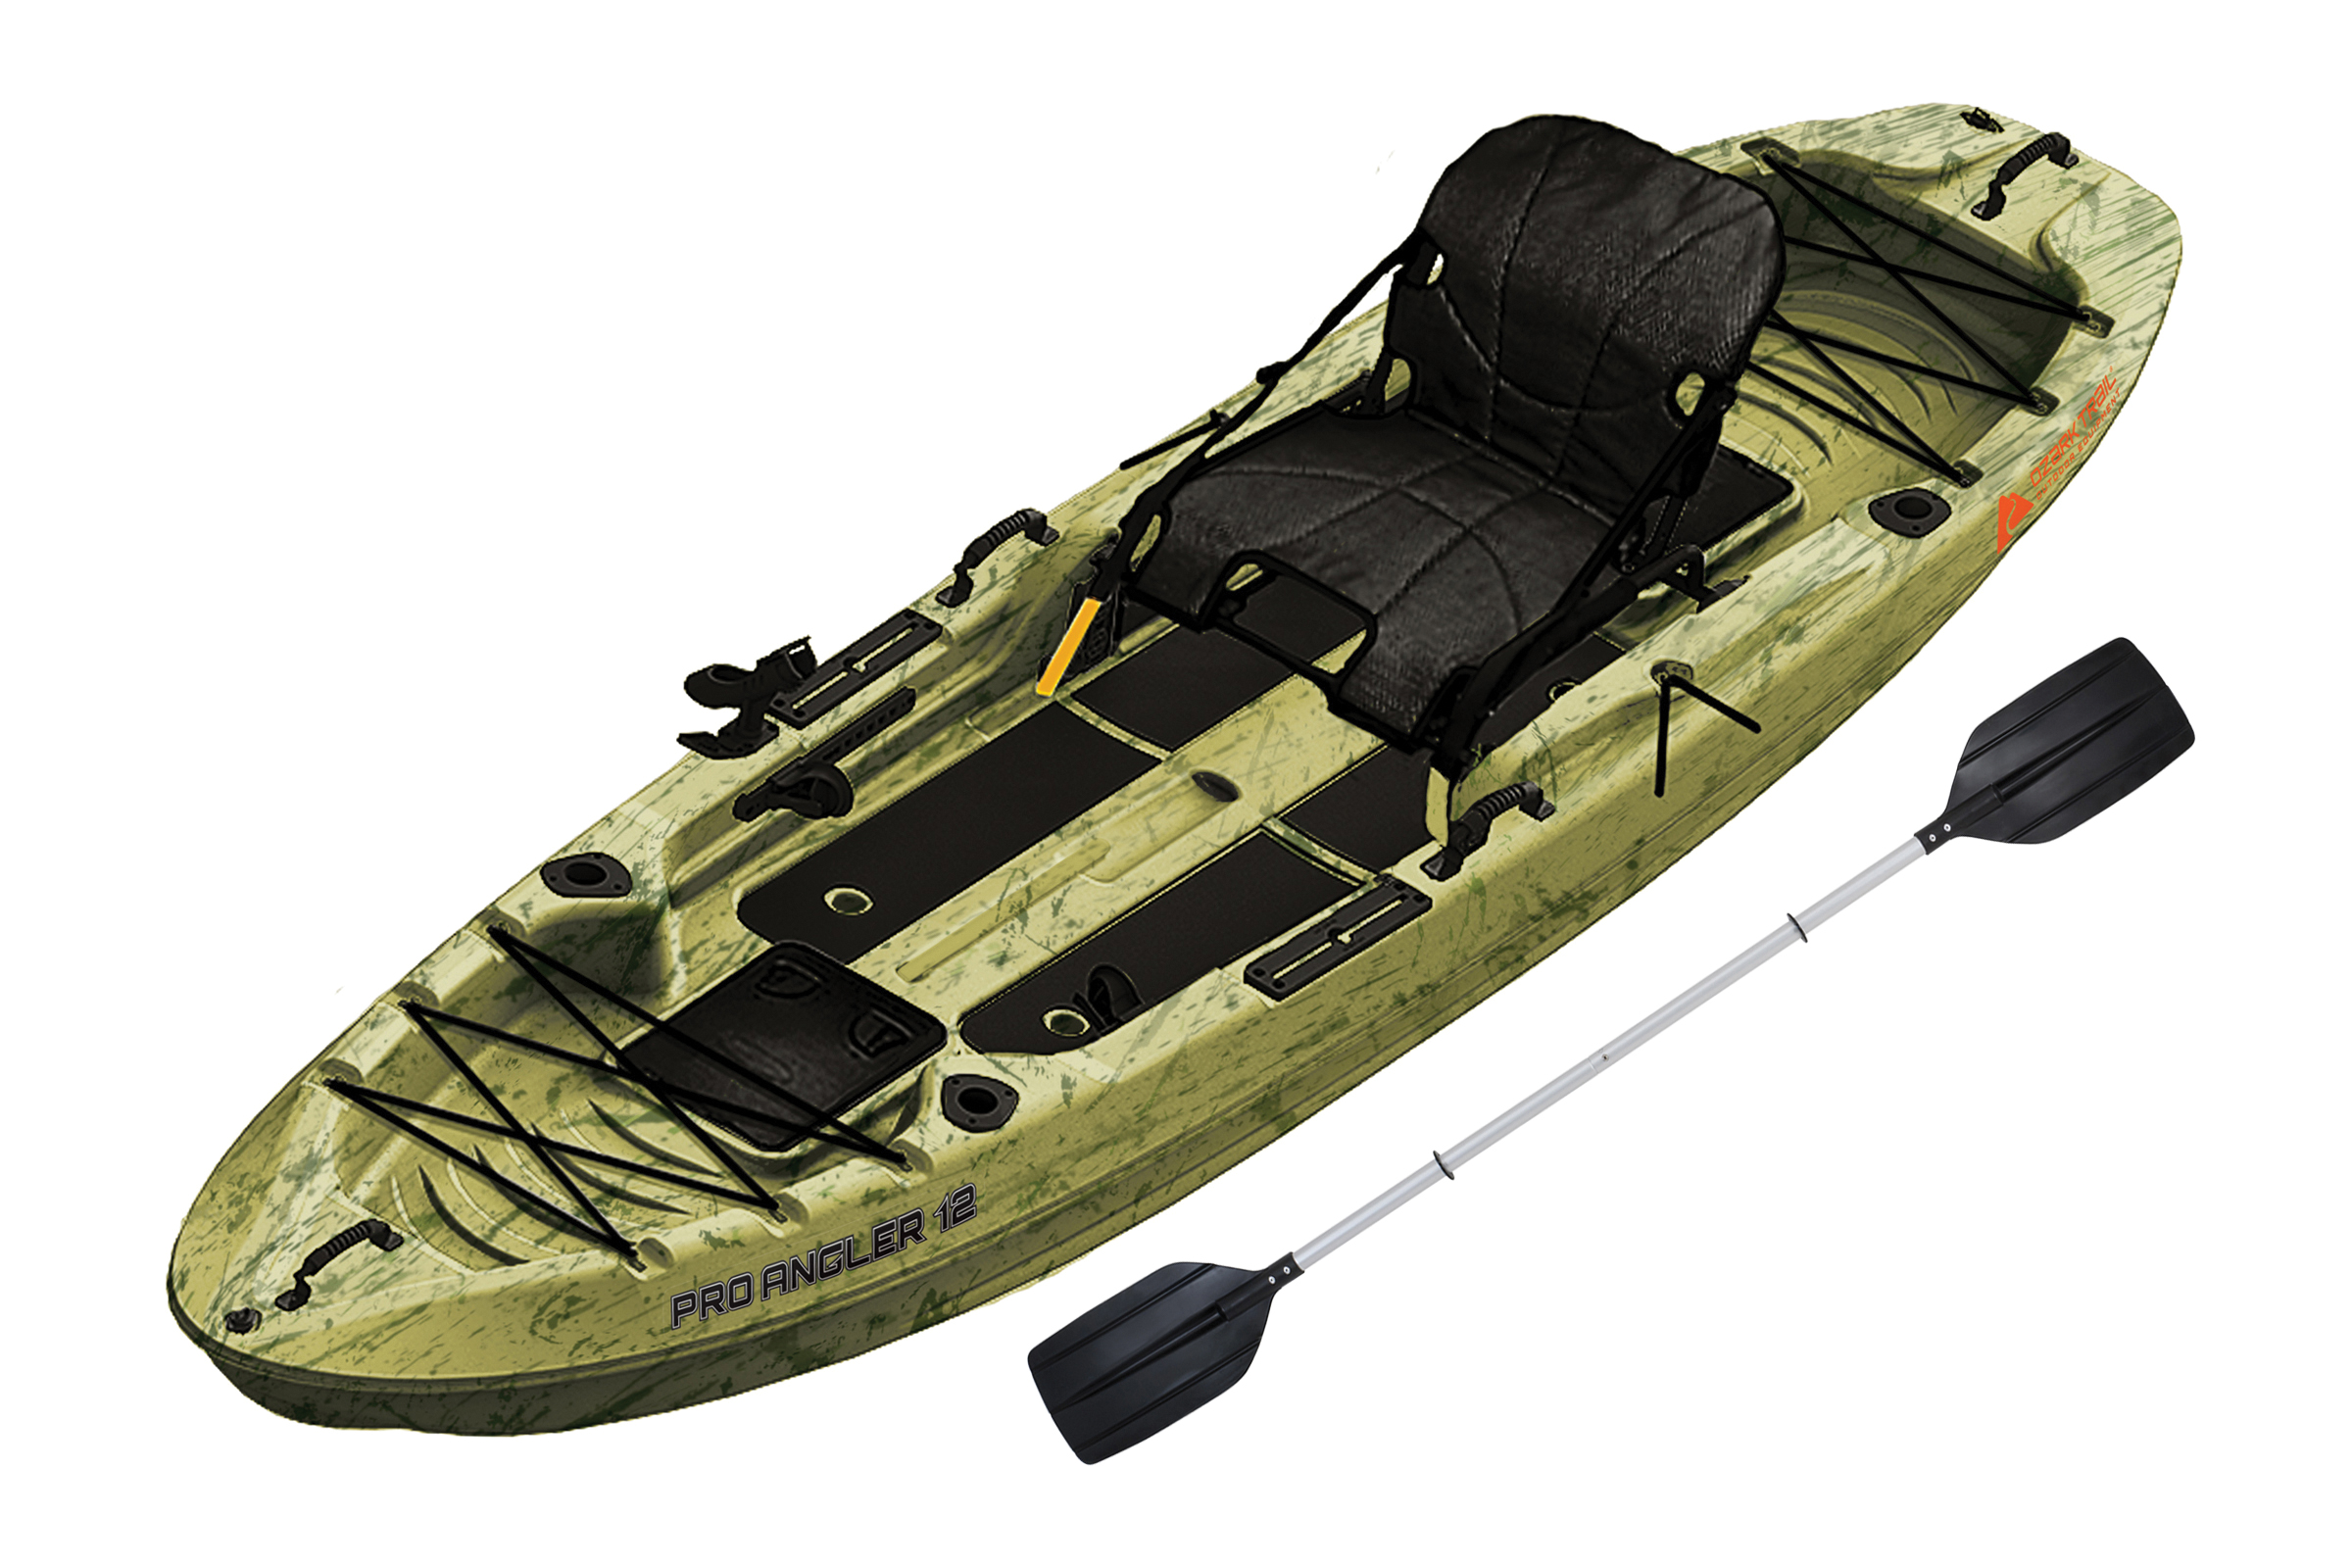 Ozark Trail 12' Pro Angler Kayak, Grass Camo with Paddle - Walmart